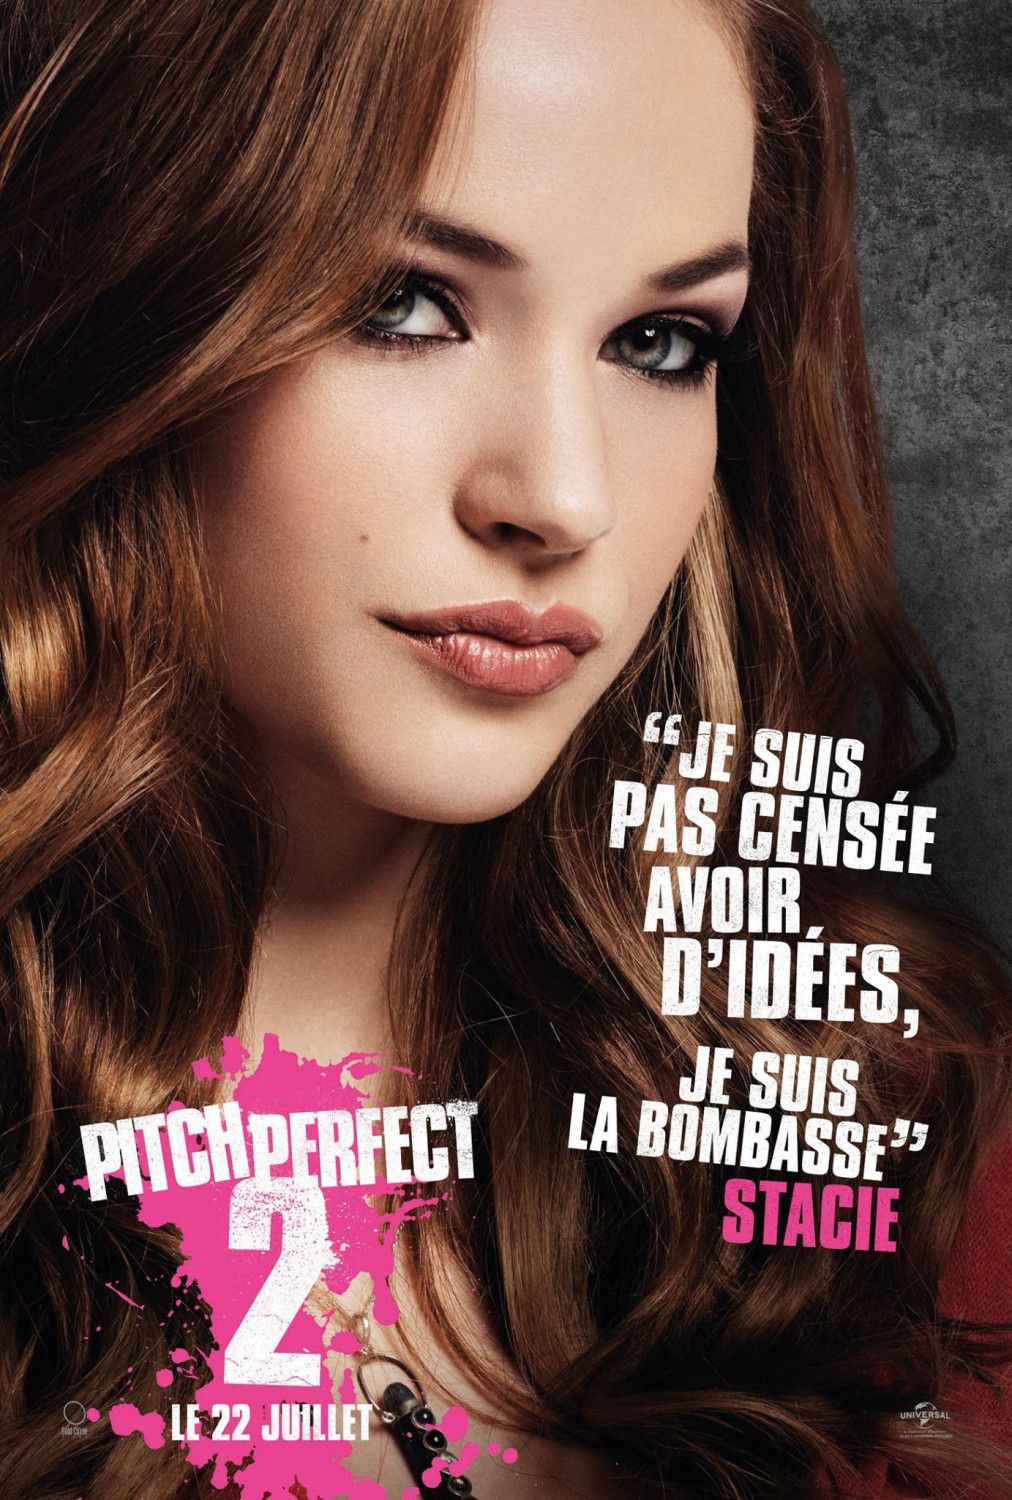 Pitch Perfect 2 - Voices 2 - Stacie